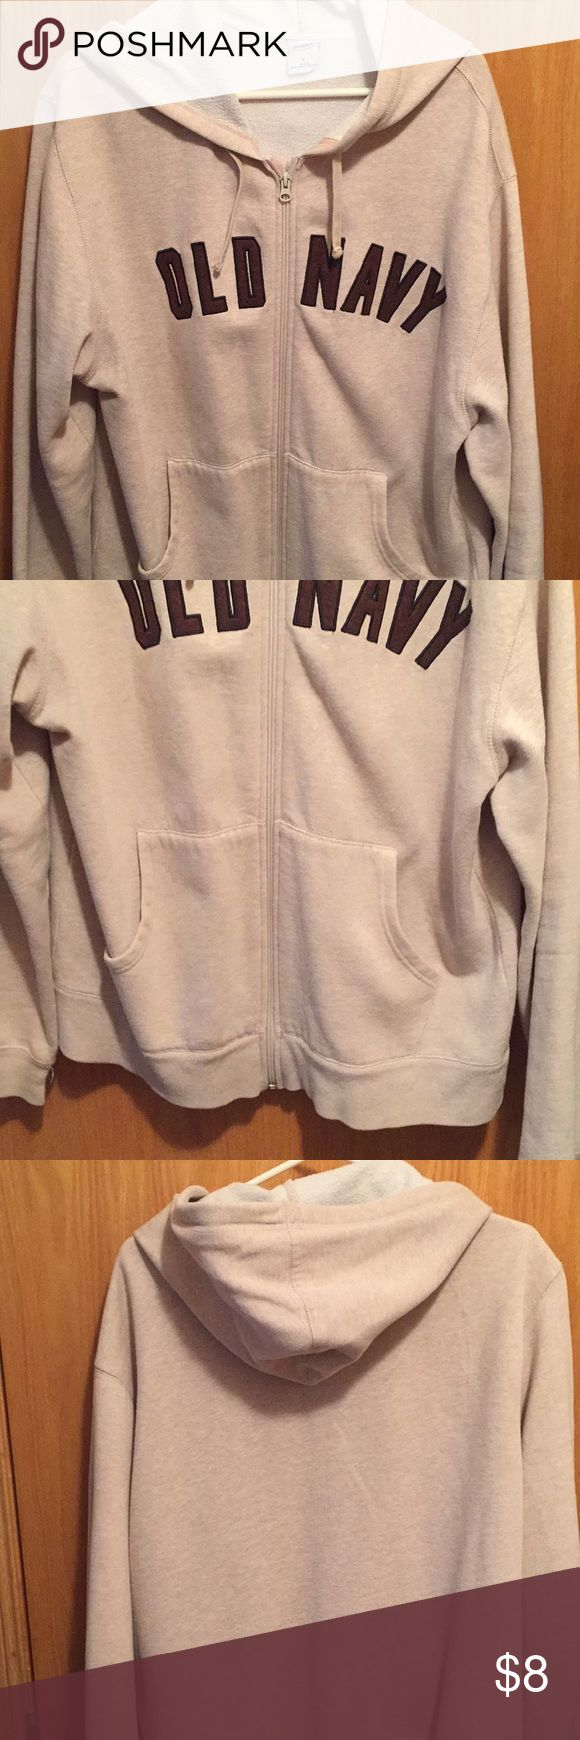 Old Navy zip up hoodie Old navy zip up hoodie with front pockets, non-smoking home, light tan with brown lettering Old Navy Shirts Sweatshirts & Hoodies